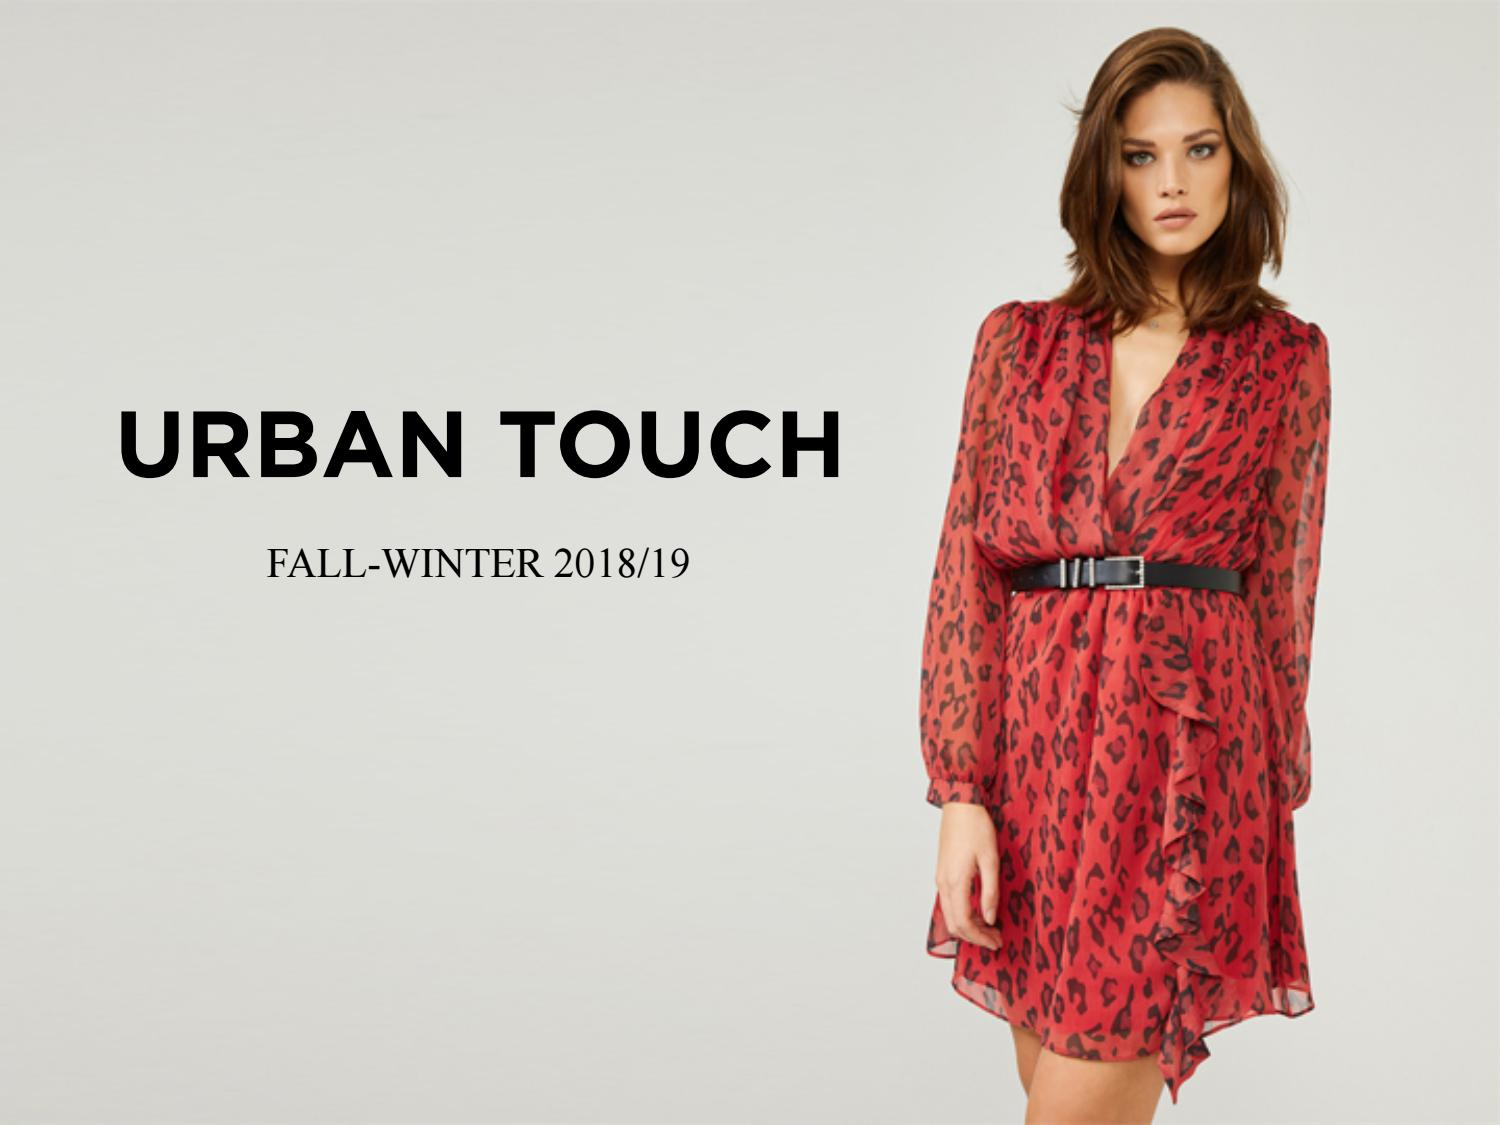 d6cd6aad4baf Urban Touch Fall Winter 2018/19 by Urban Touch - issuu